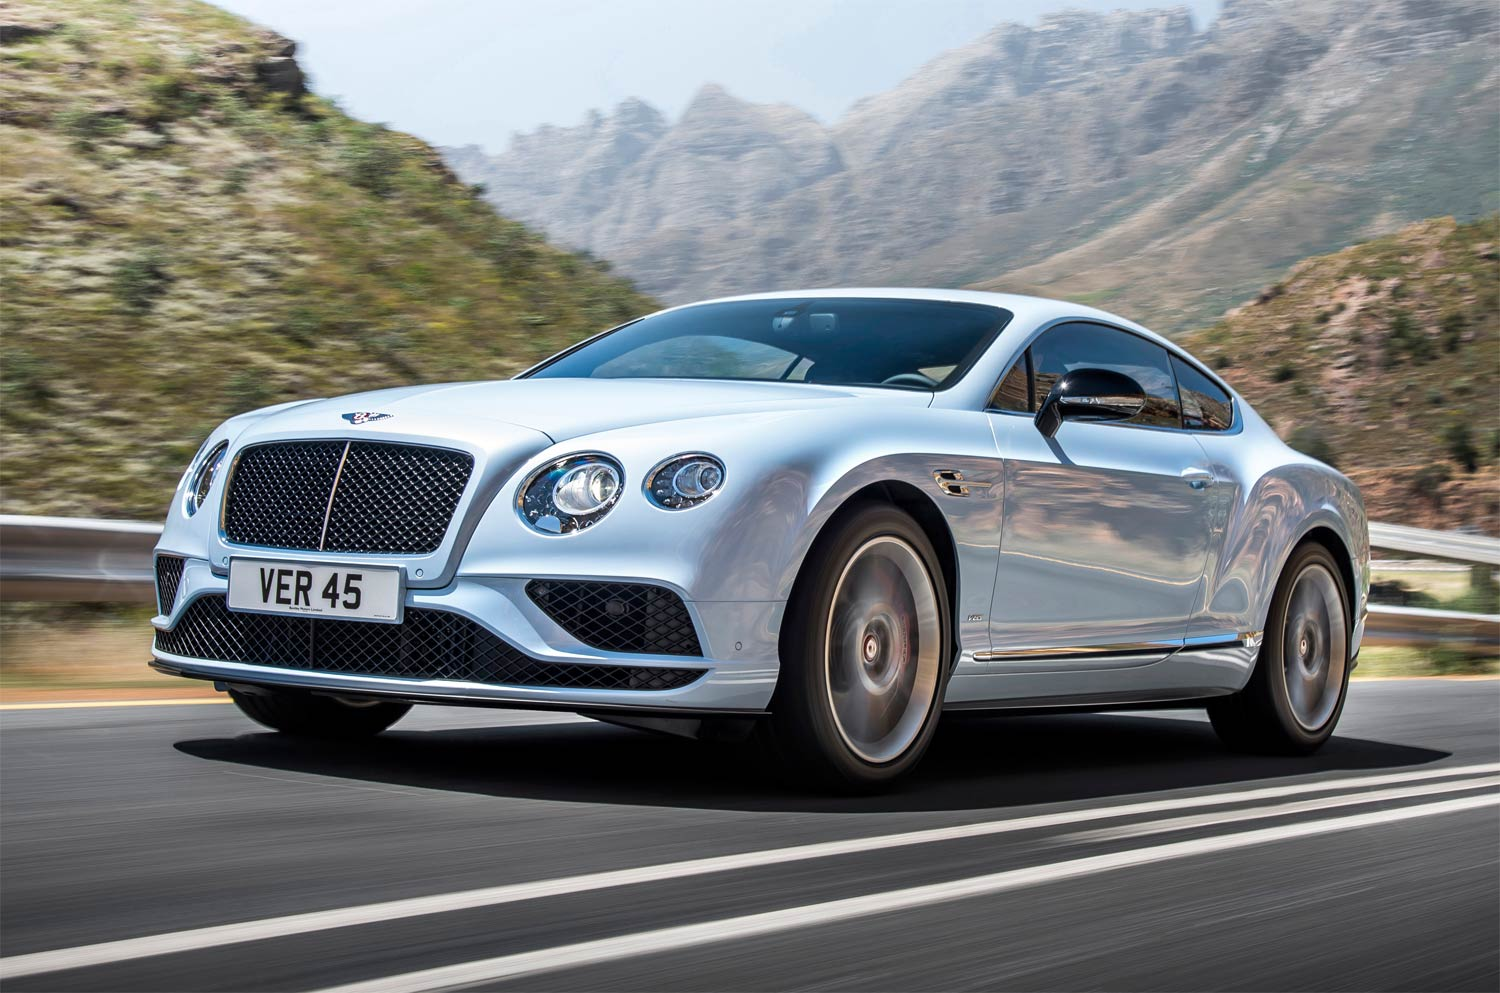 Bentley Motors introduce a suite of design upgrades and features for Continental GT family